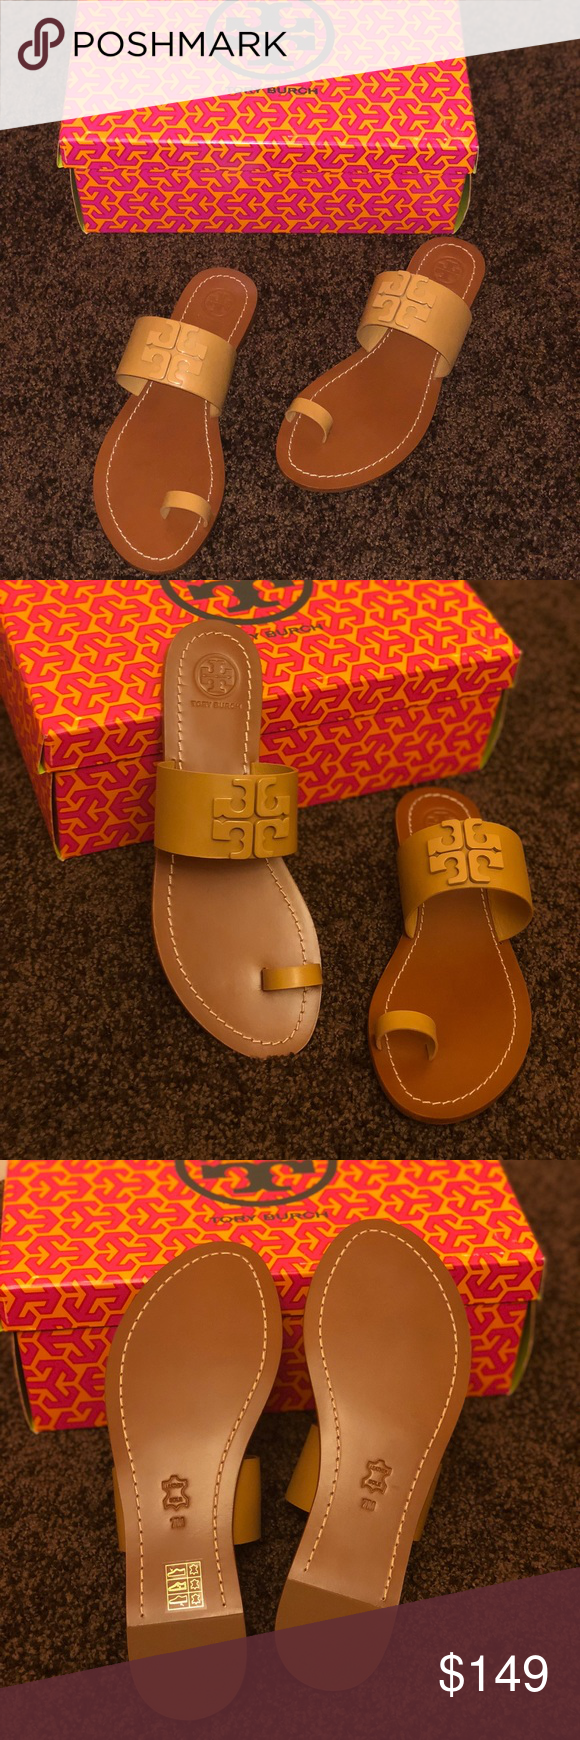 279ffdf29 Purchased directly from Tory Burch Store! Tory Burch The Lowell Flat Slide  deconstructs our double-T logo with a ...